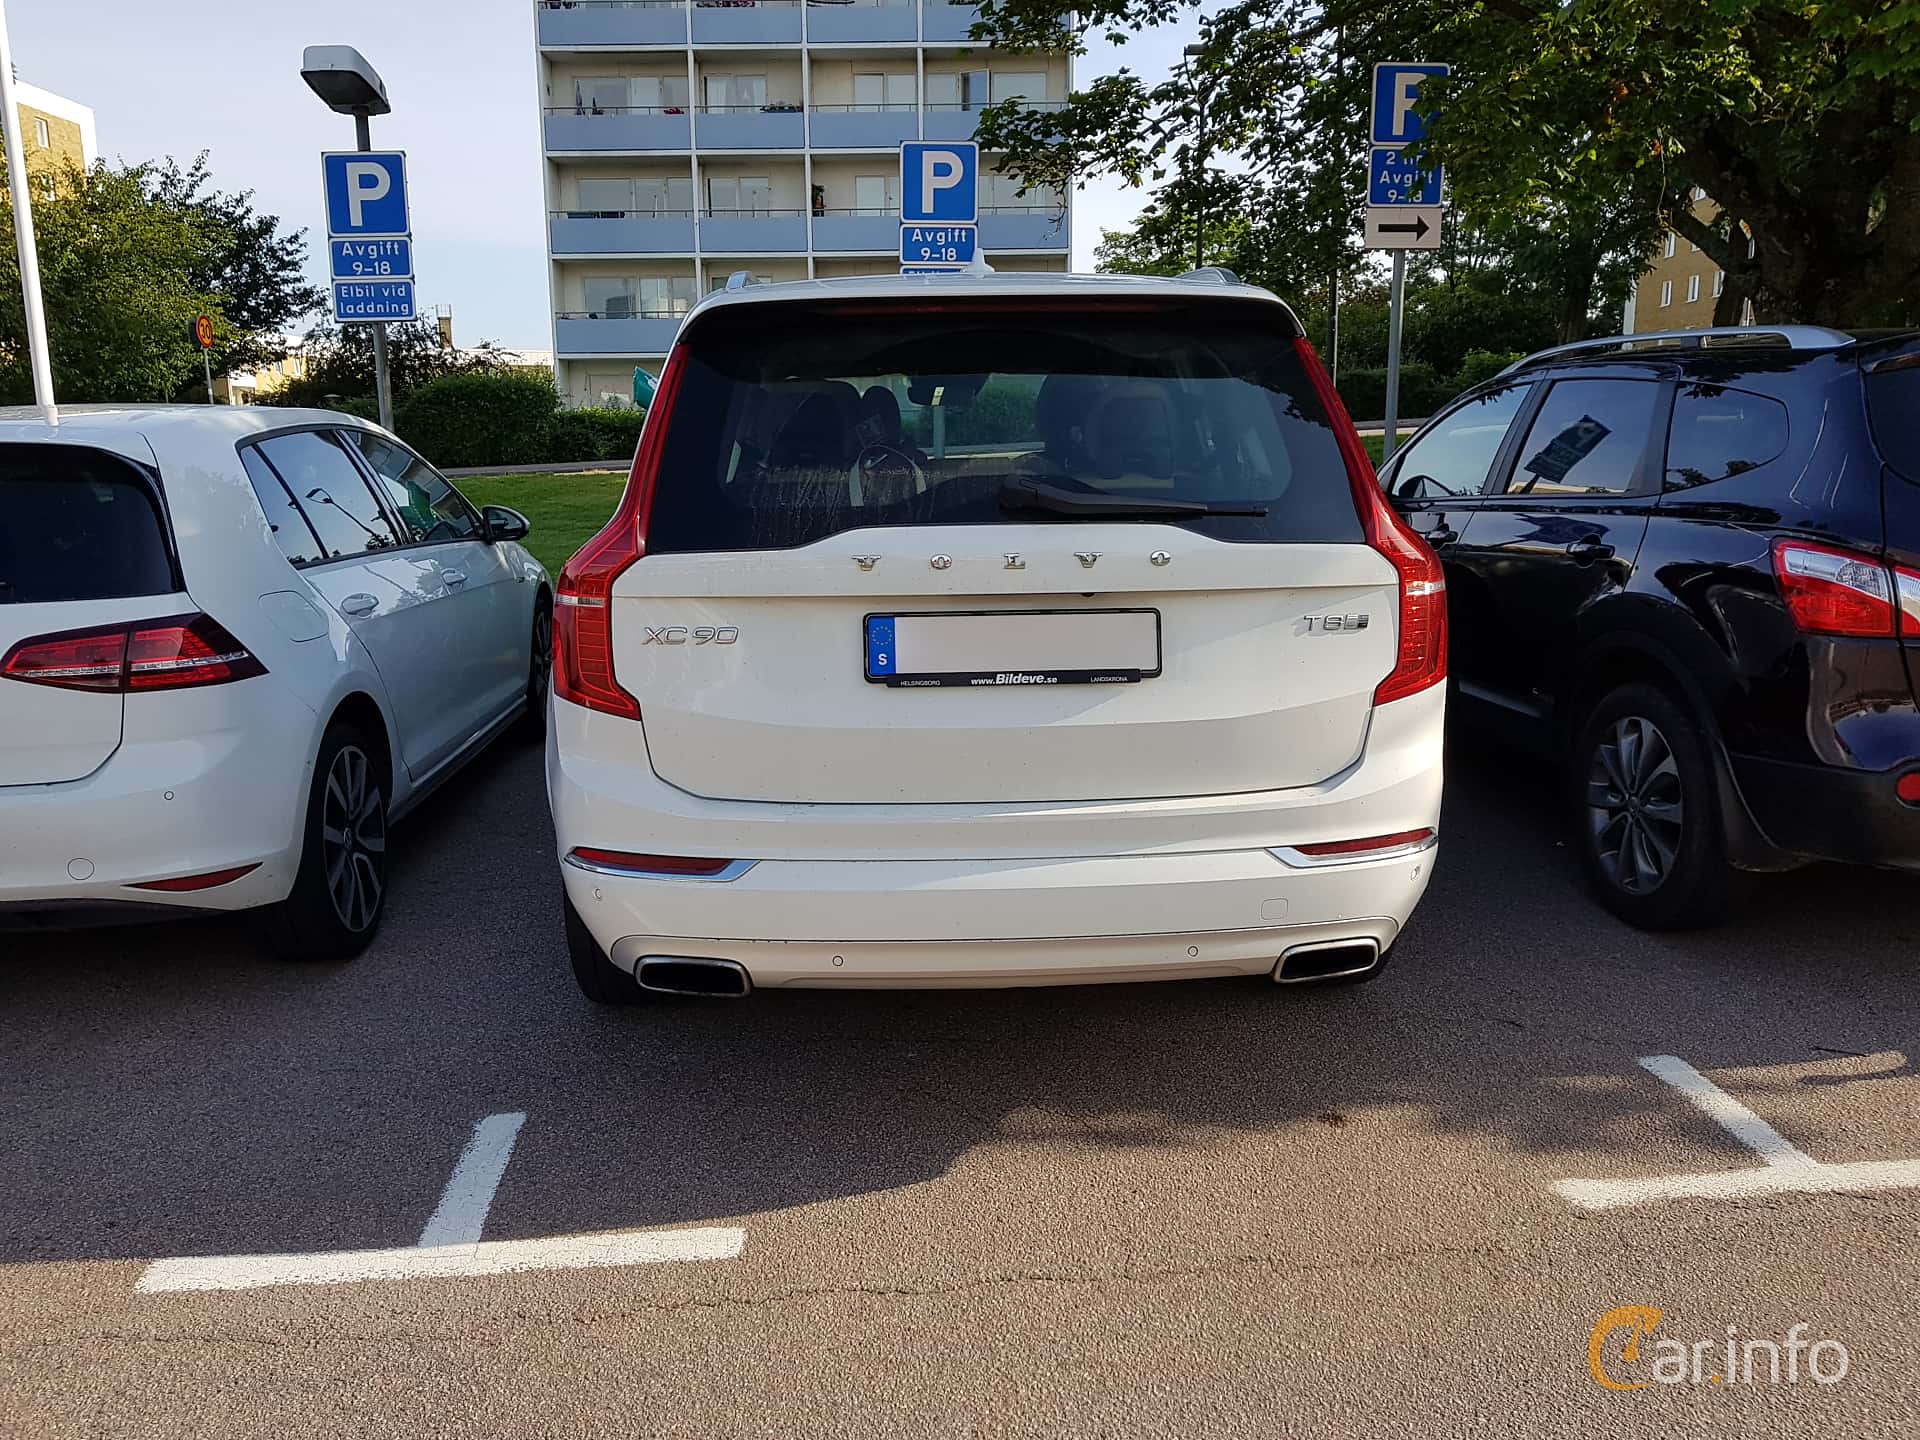 Volvo XC90 2.0 T8 AWD Geartronic, 407hp, 2016